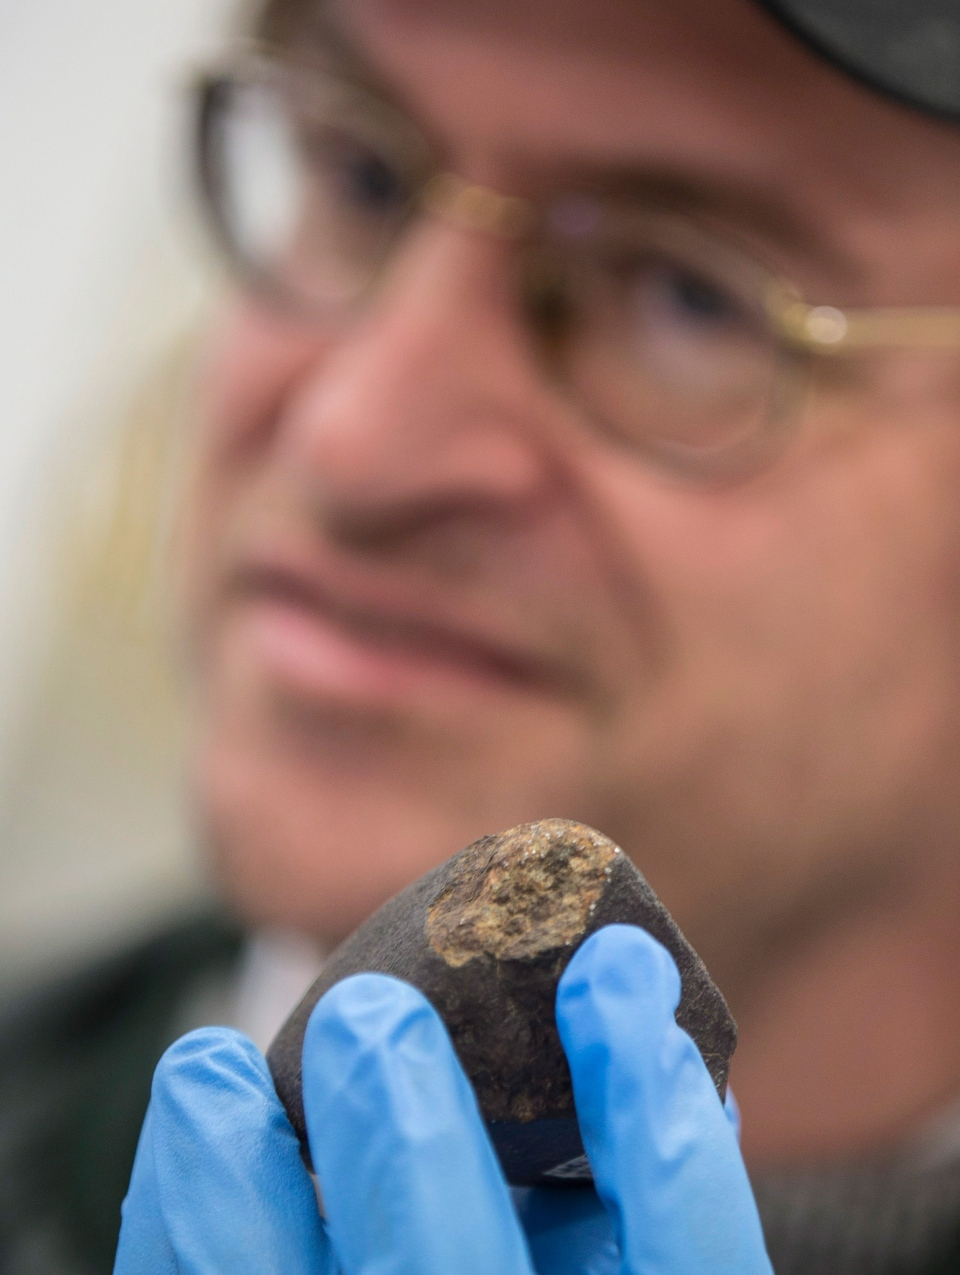 Phil McCausland, an Assistant Professor and Meteorite Curator at Western's Department of Earth Sciences holds a meteorite, the approximate size of the one which they suspect hit the ground just north of St. Thomas, Ont. on Tuesday, during a press conference at the airport in St.Thomas, Friday, March 21, 2014. (Geoff Robins / THE CANADIAN PRESS)